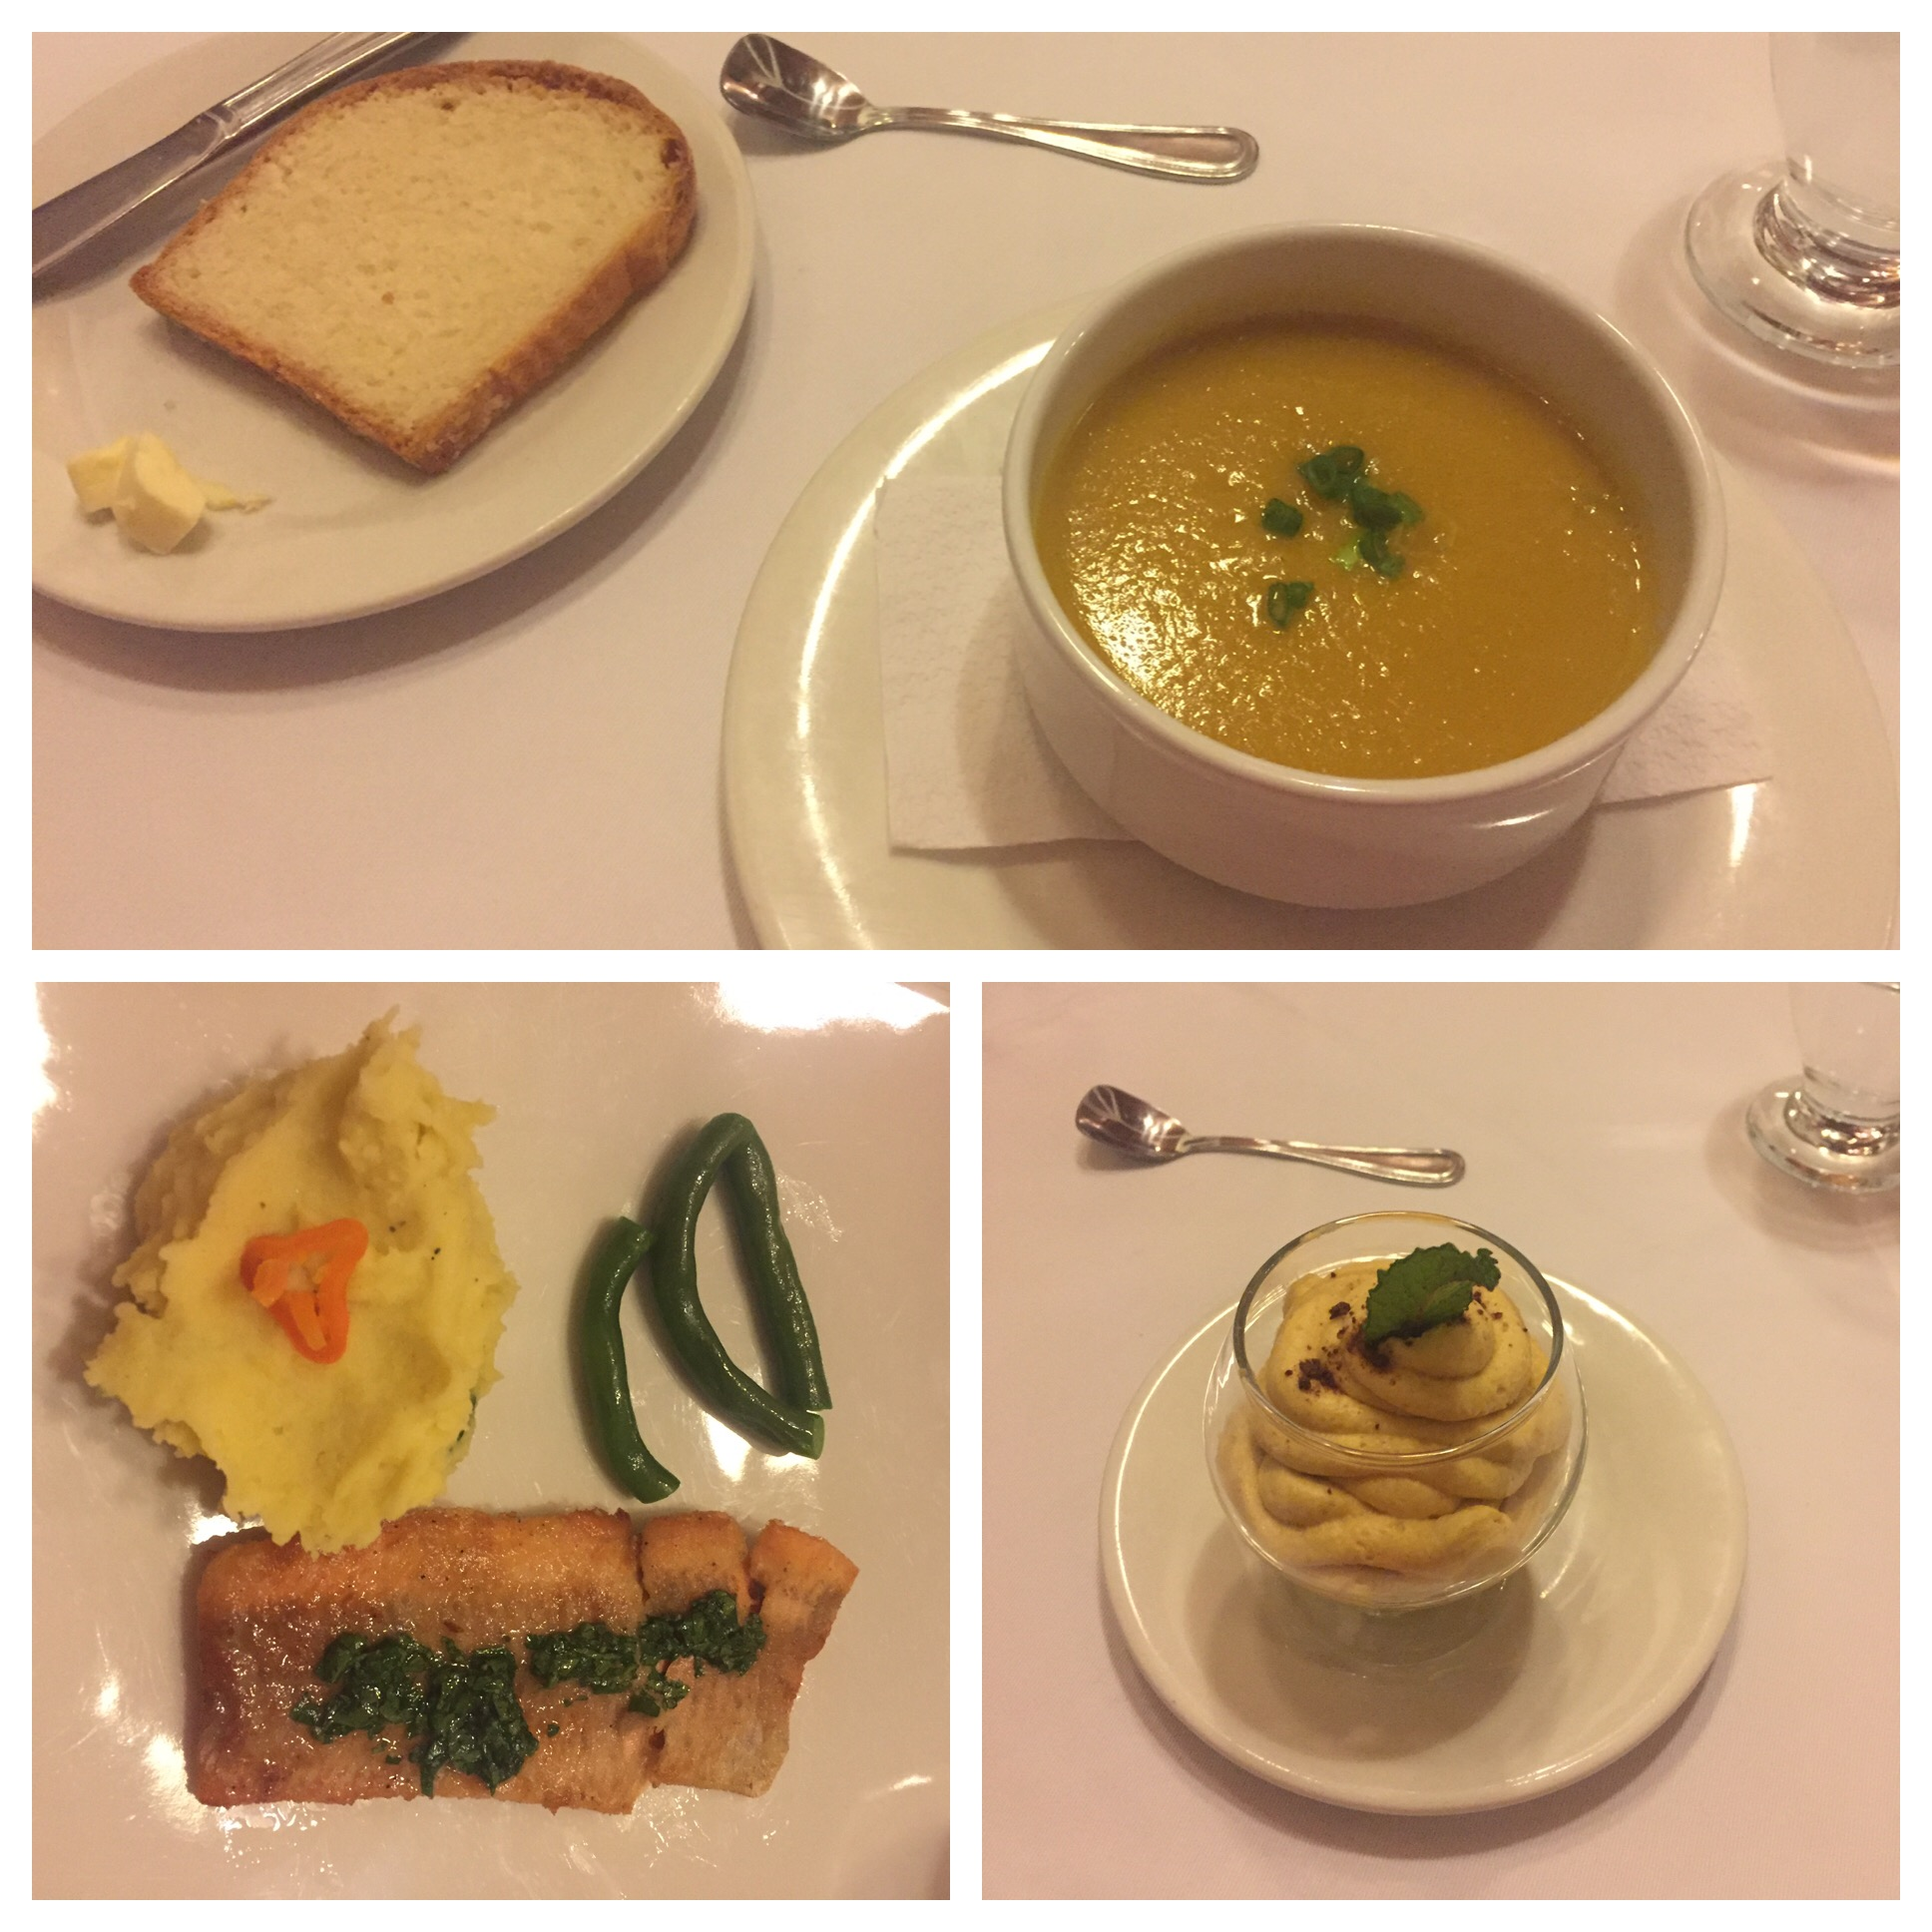 Pumpkin soup, trout with mashed potatoes and green beans, and lumpa mousse. Lumpa is some kind of fruit grown in Peru that I've never heard of but it was great!!